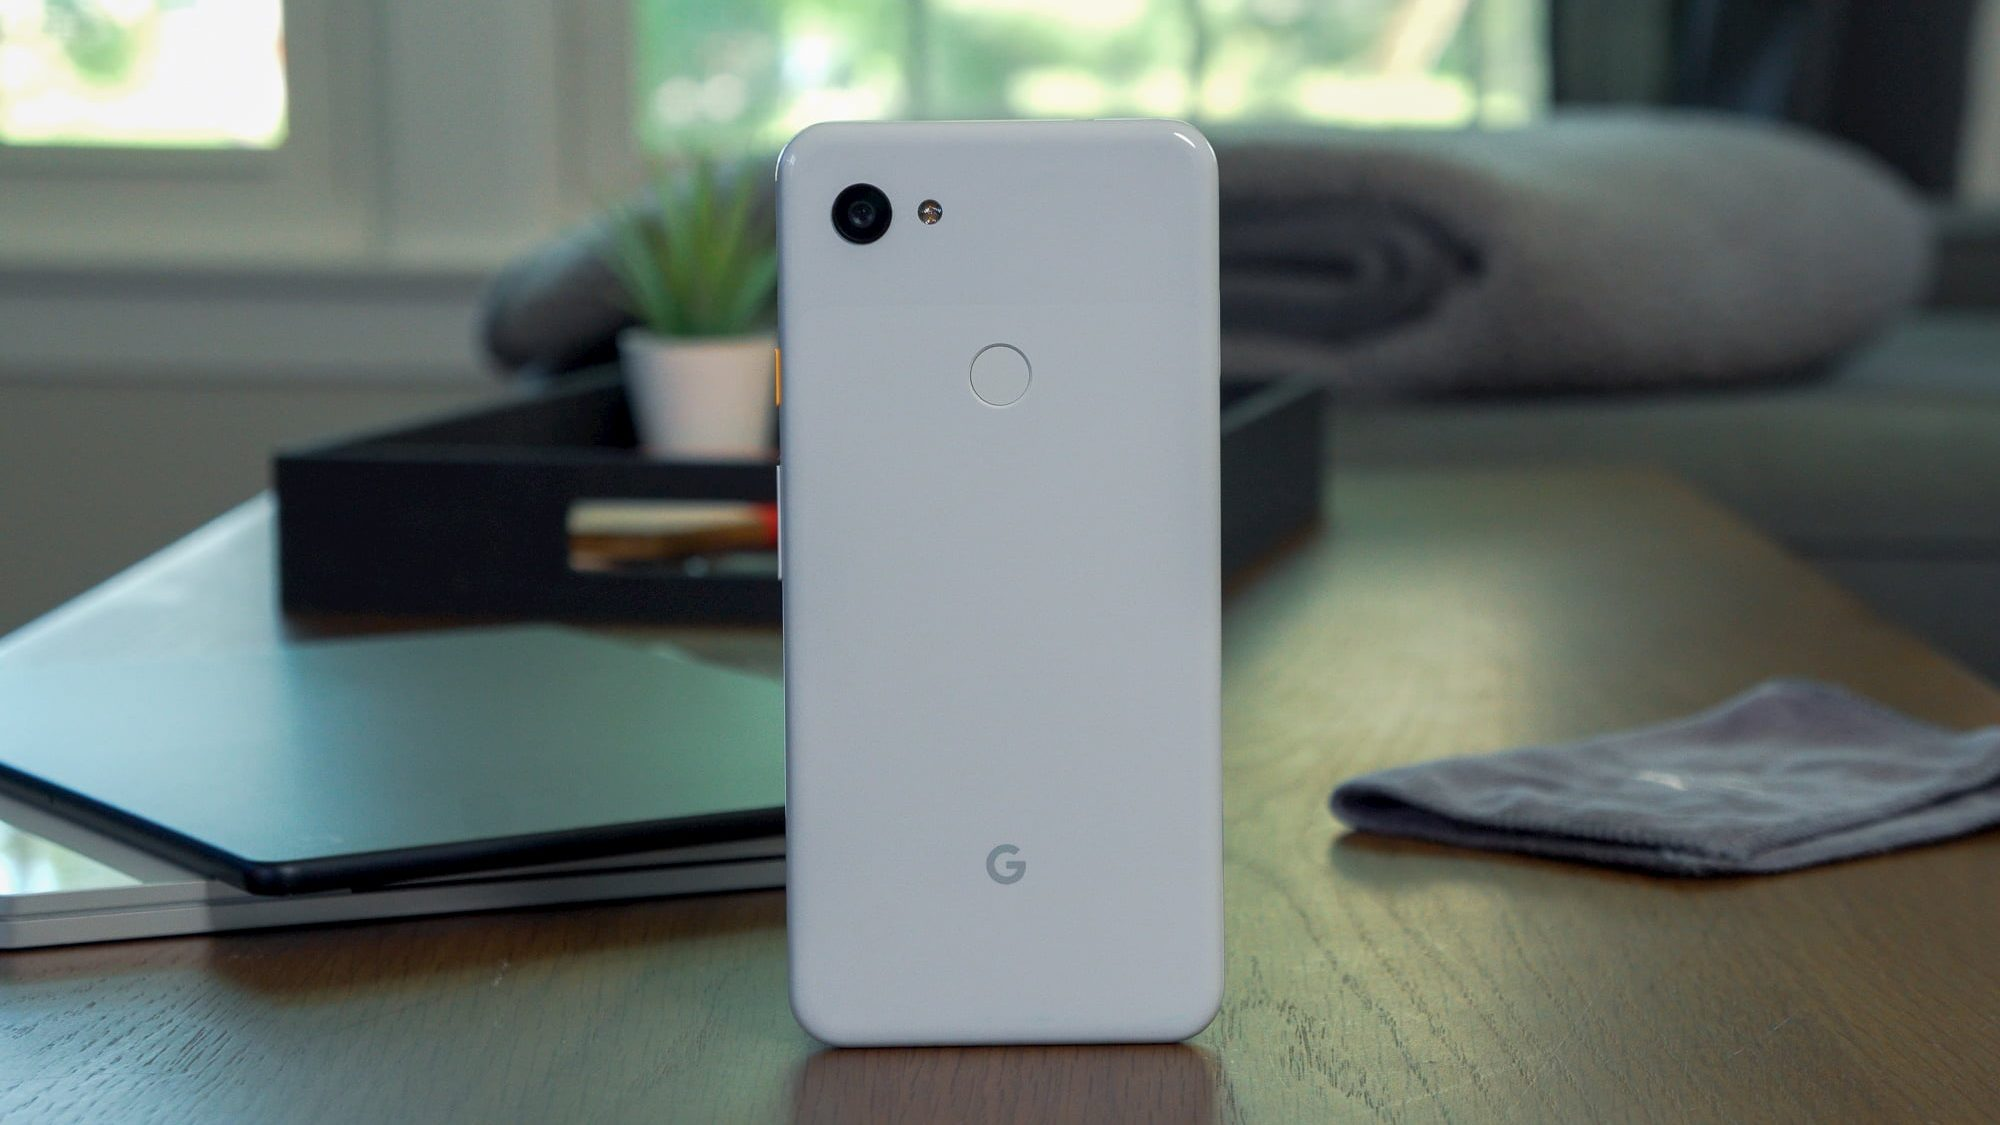 Google's Pixel 4 'Leak' Could Point To An Earlier #madebyGoogle Hardware Event In The Fall